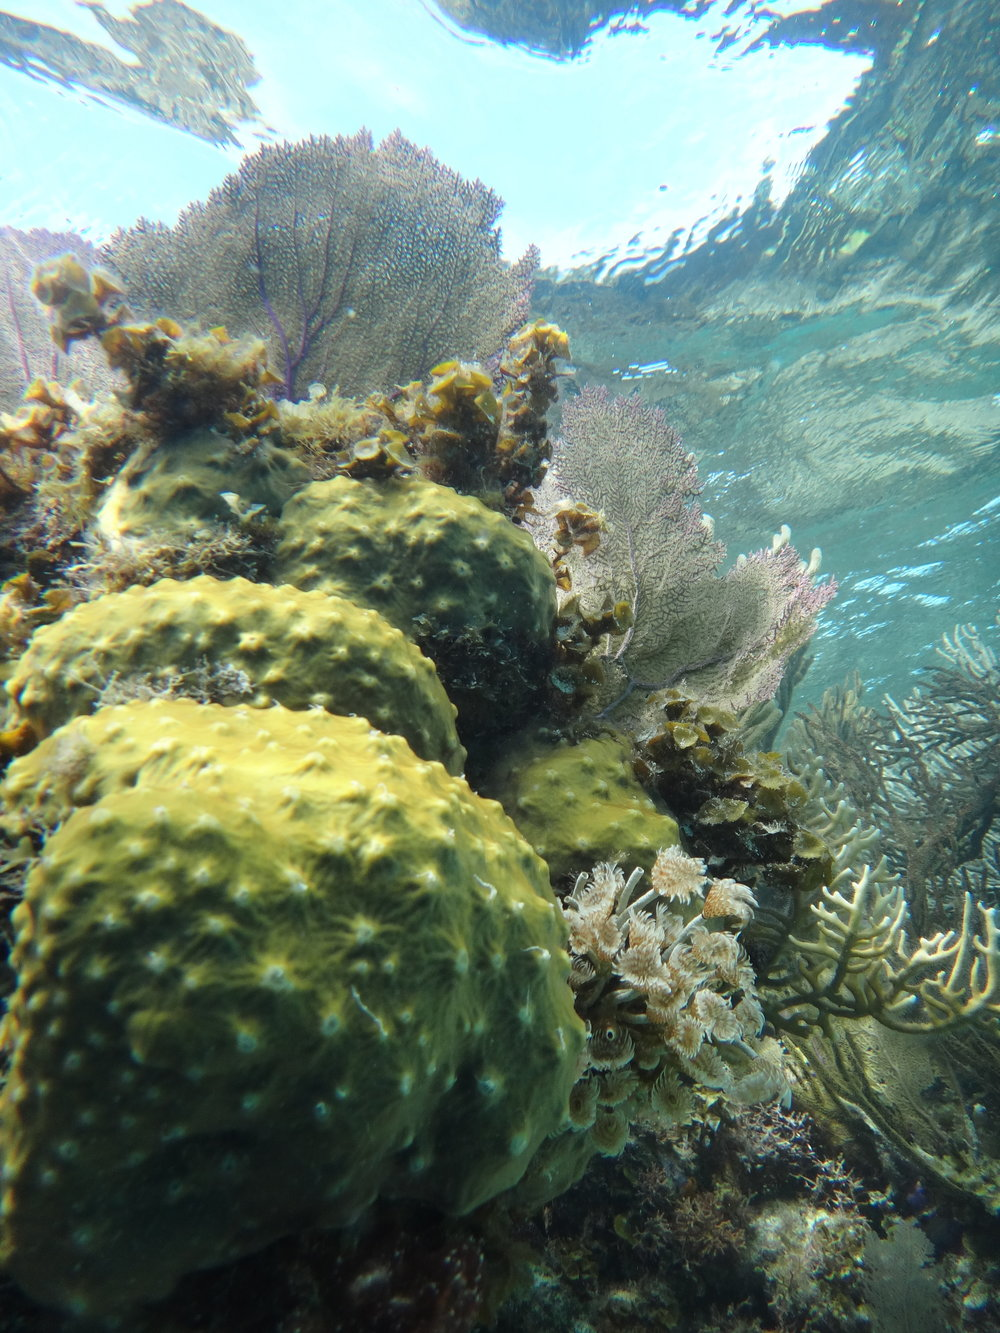 Belize Corals & Worms by Kenna Reed '18